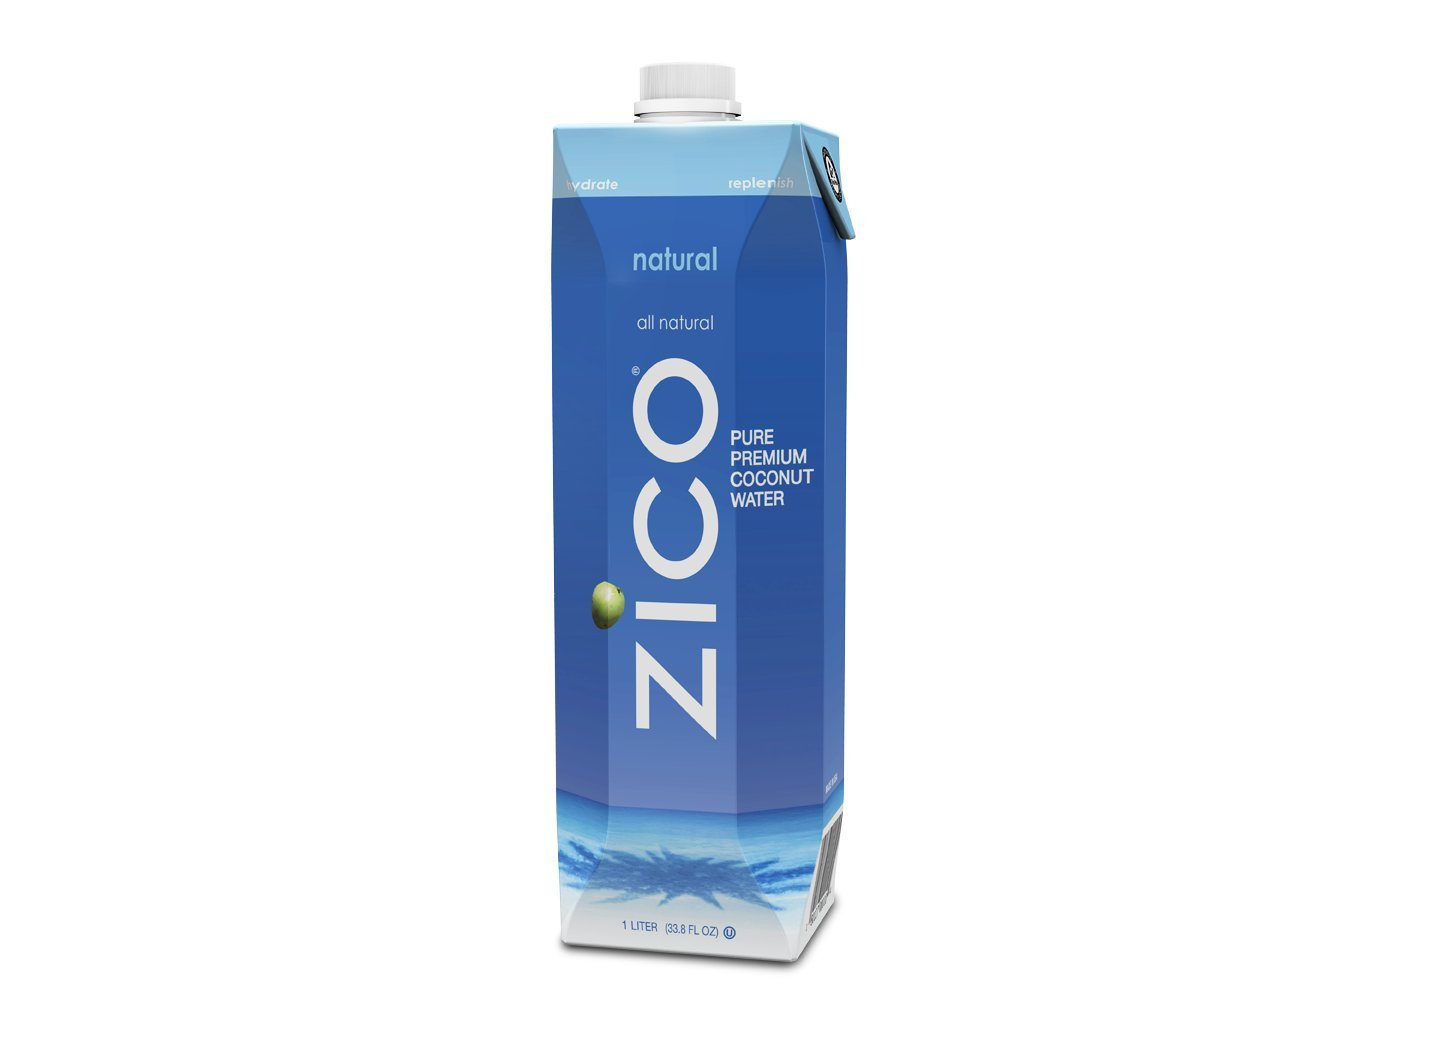 Amazon - 6 x ZICO Pure Premium Coconut Water,natural 33.8oz - $13.60